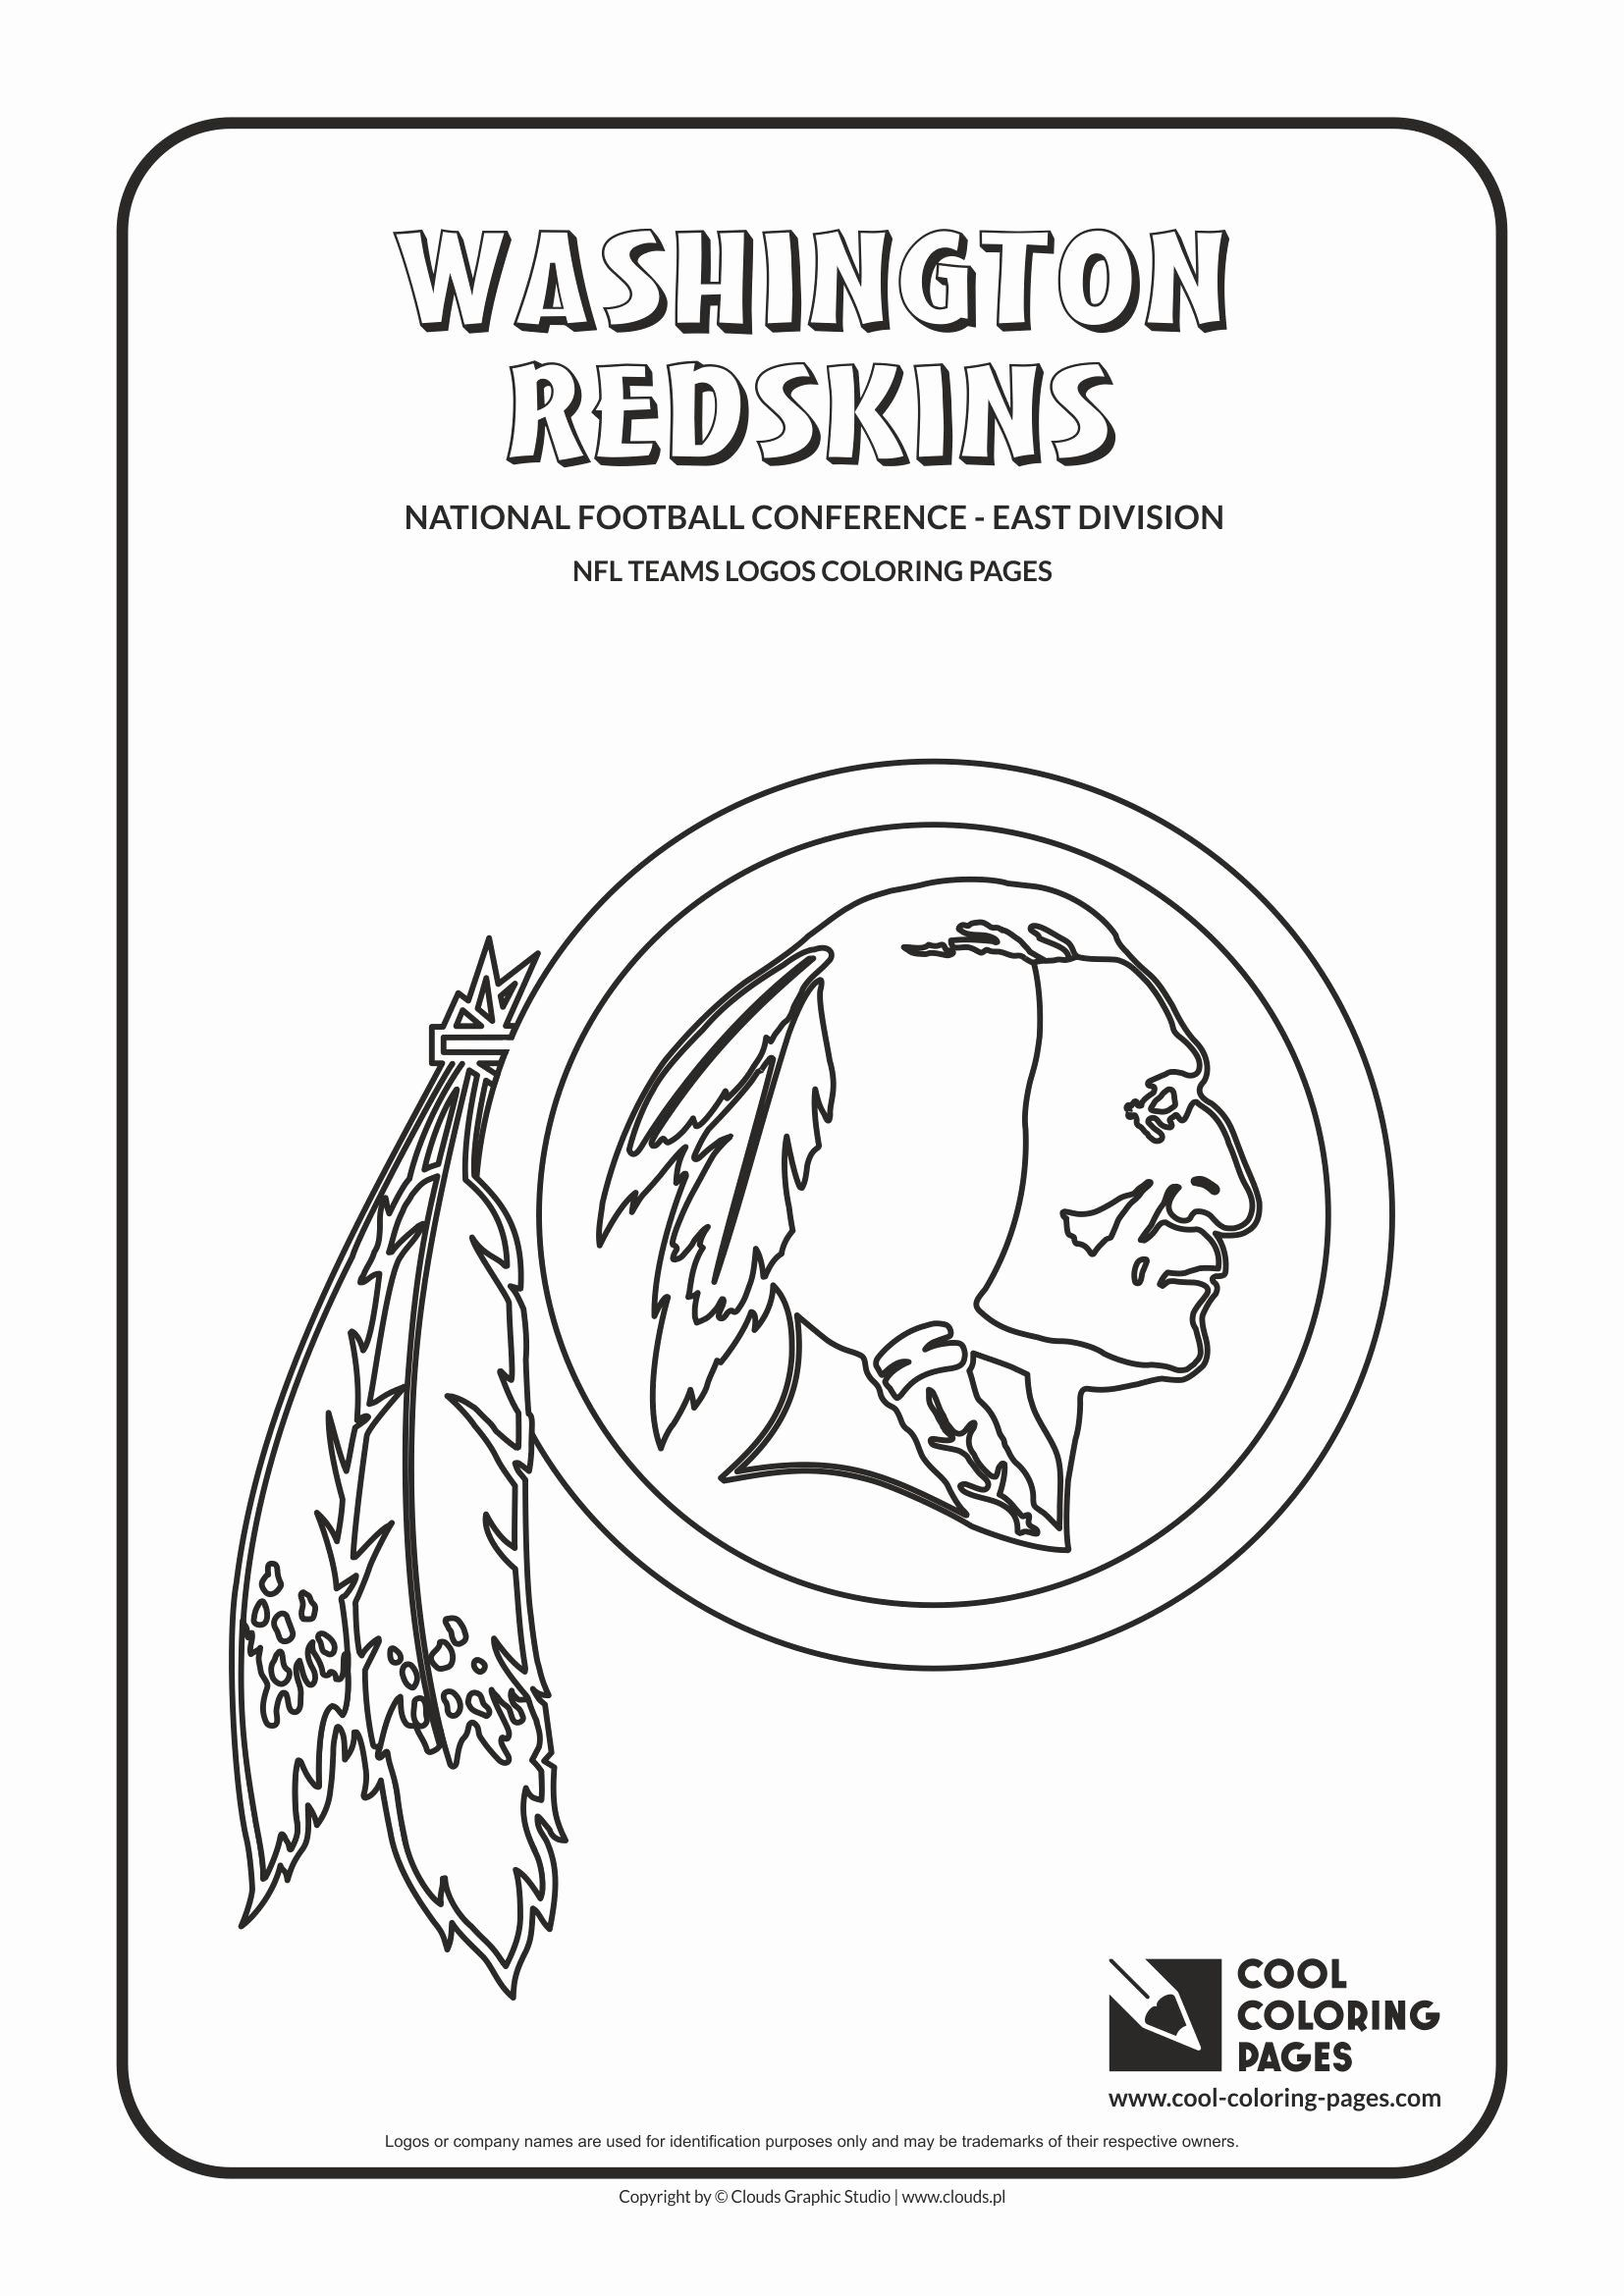 Nfl Logo Coloring Page Awesome Cool Coloring Pages Nfl American Football Clubs Logos In 2020 Nfl Teams Logos Football Coloring Pages College Football Logos